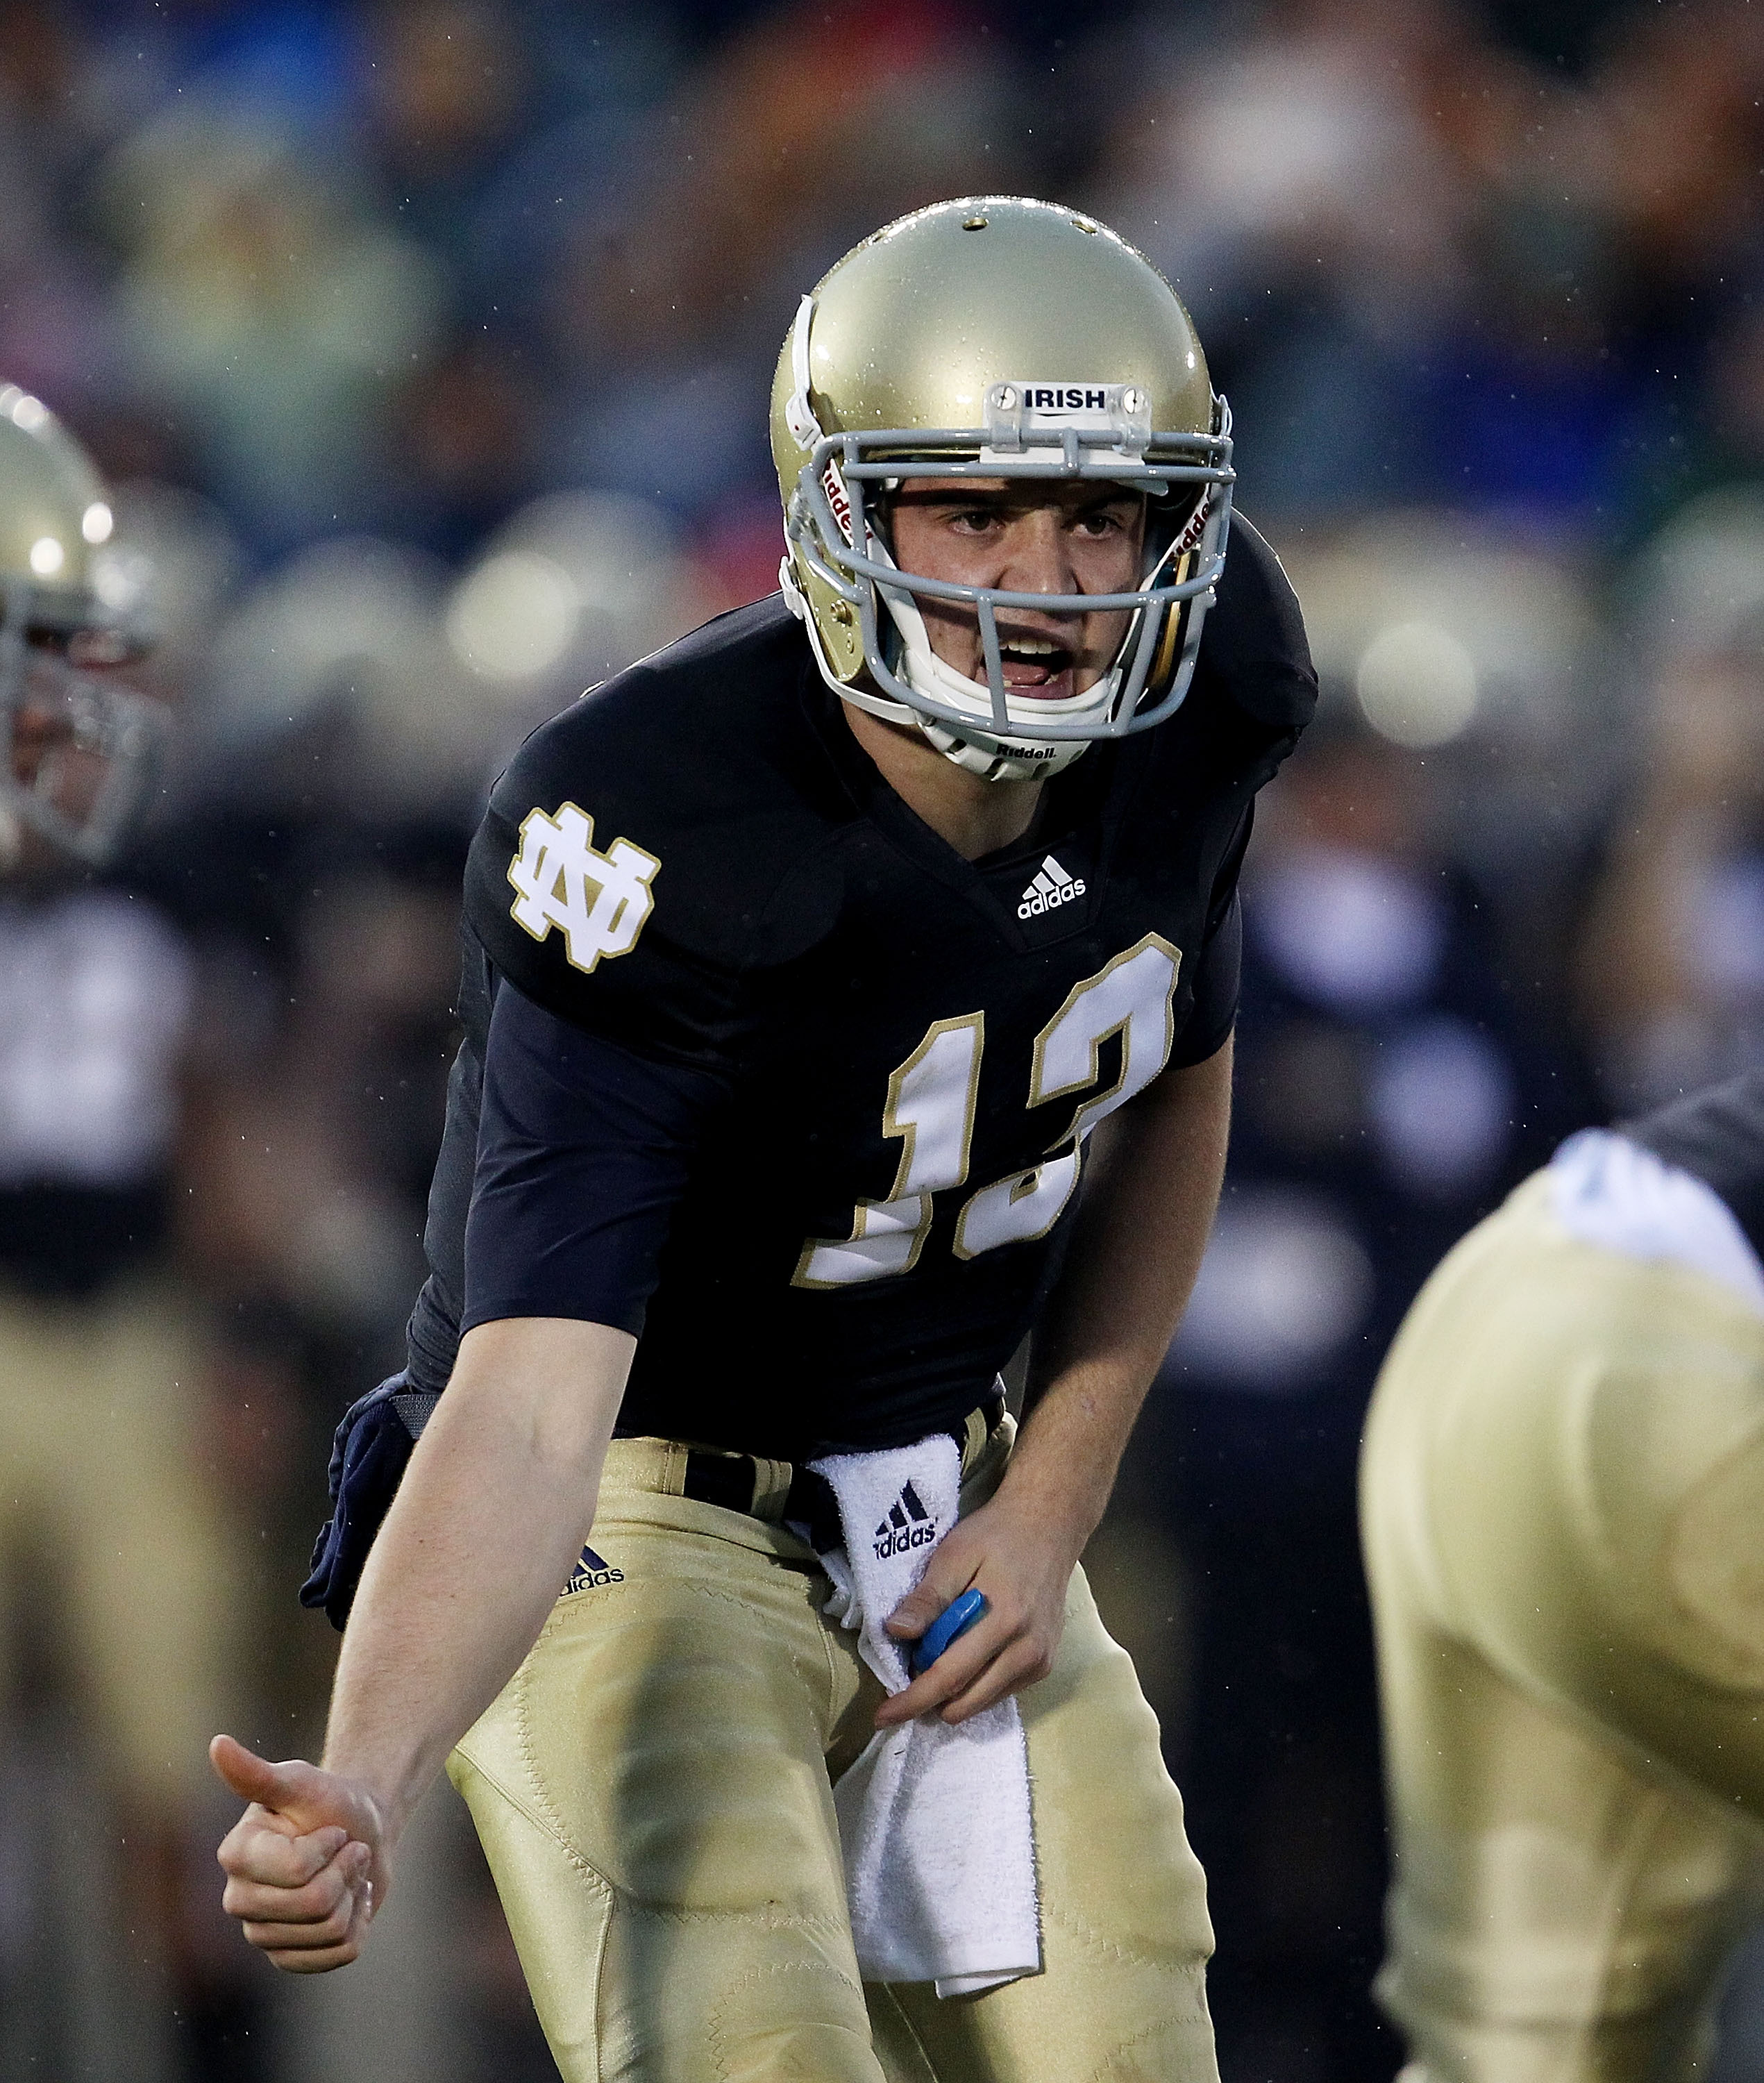 SOUTH BEND, IN - NOVEMBER 13: Tommy Rees #13 of the Notre Dame Fighting Irish calls a play at the line of scrimmage against the Utah Utes at Notre Dame Stadium on November 13, 2010 in South Bend, Indiana. (Photo by Jonathan Daniel/Getty Images)